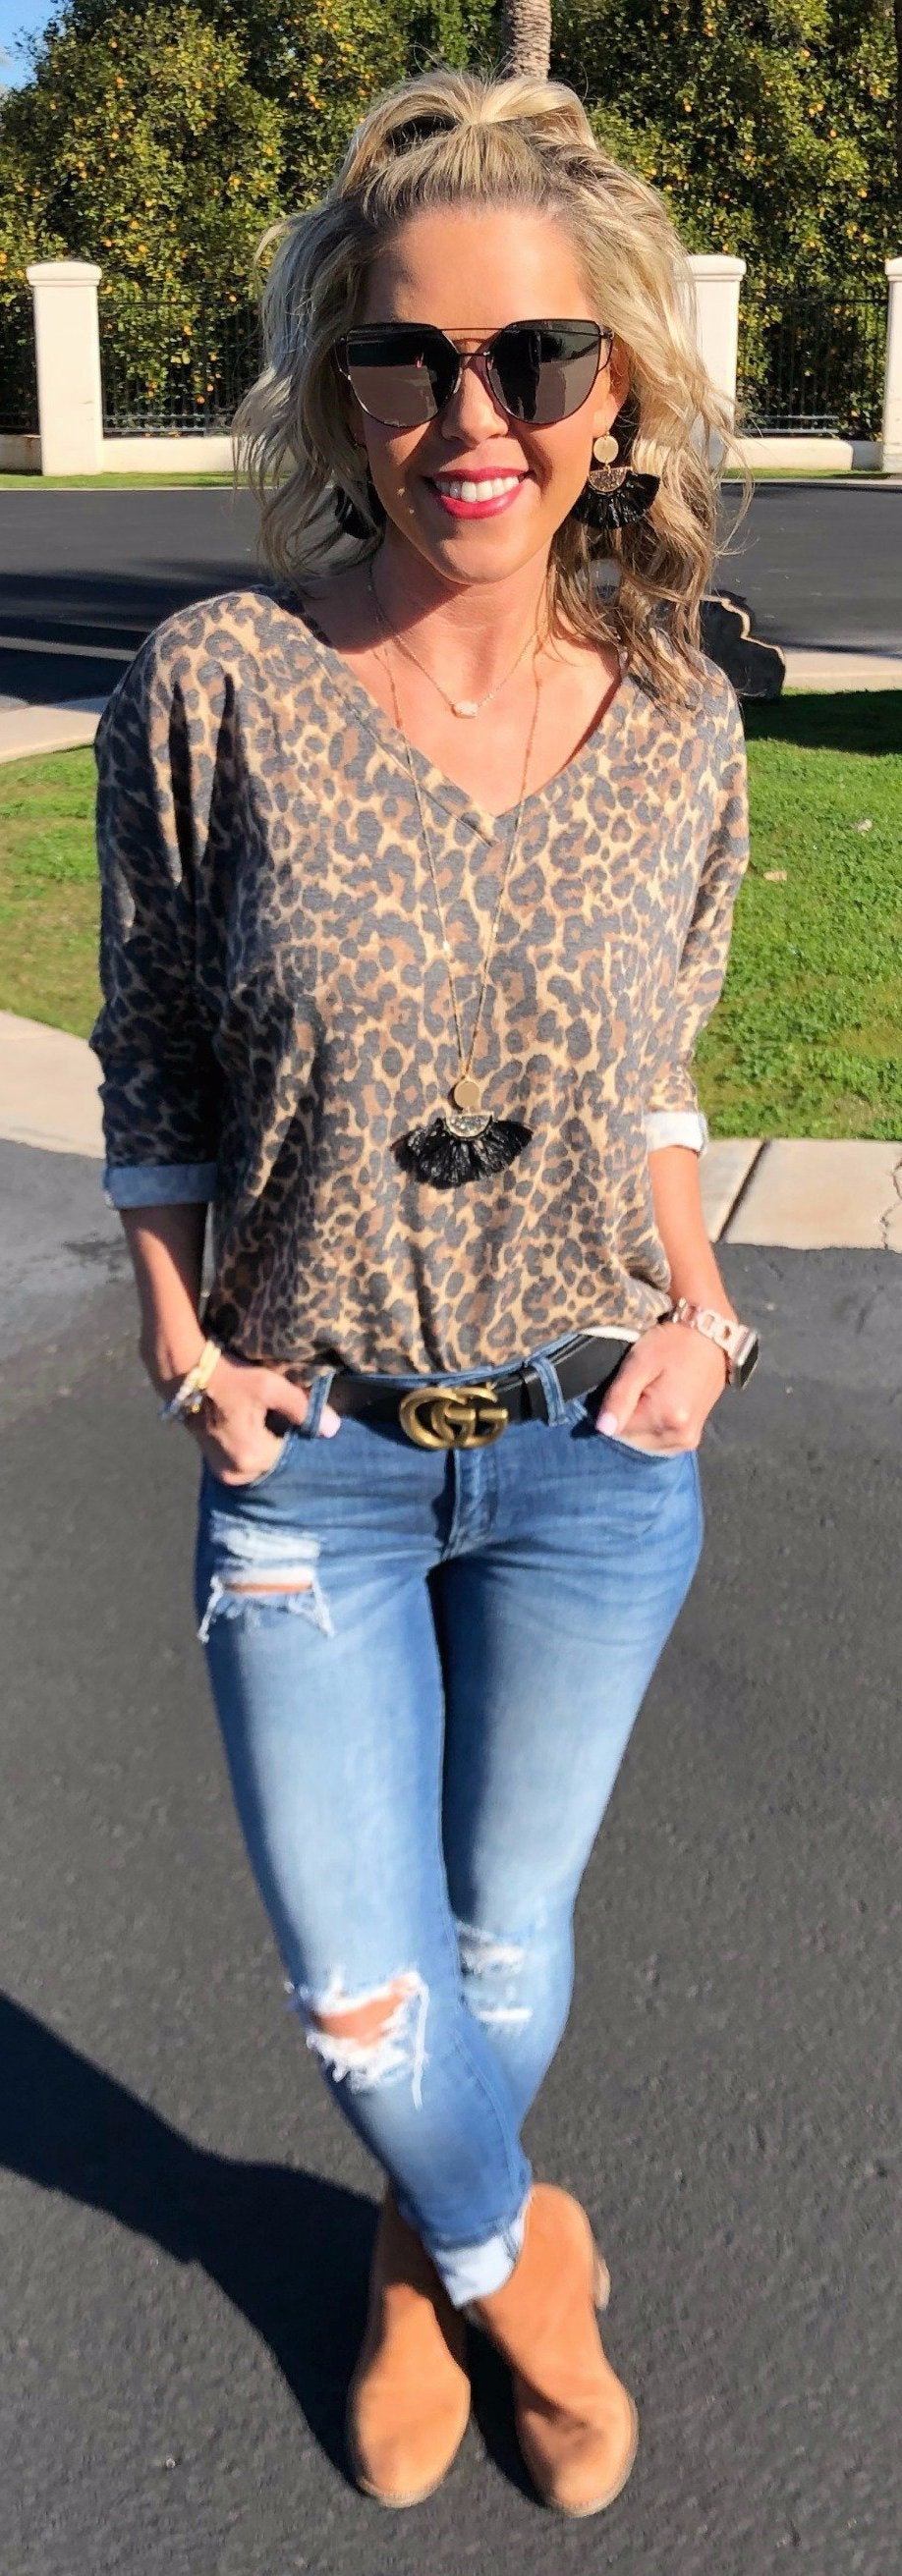 Loving Leopard Top